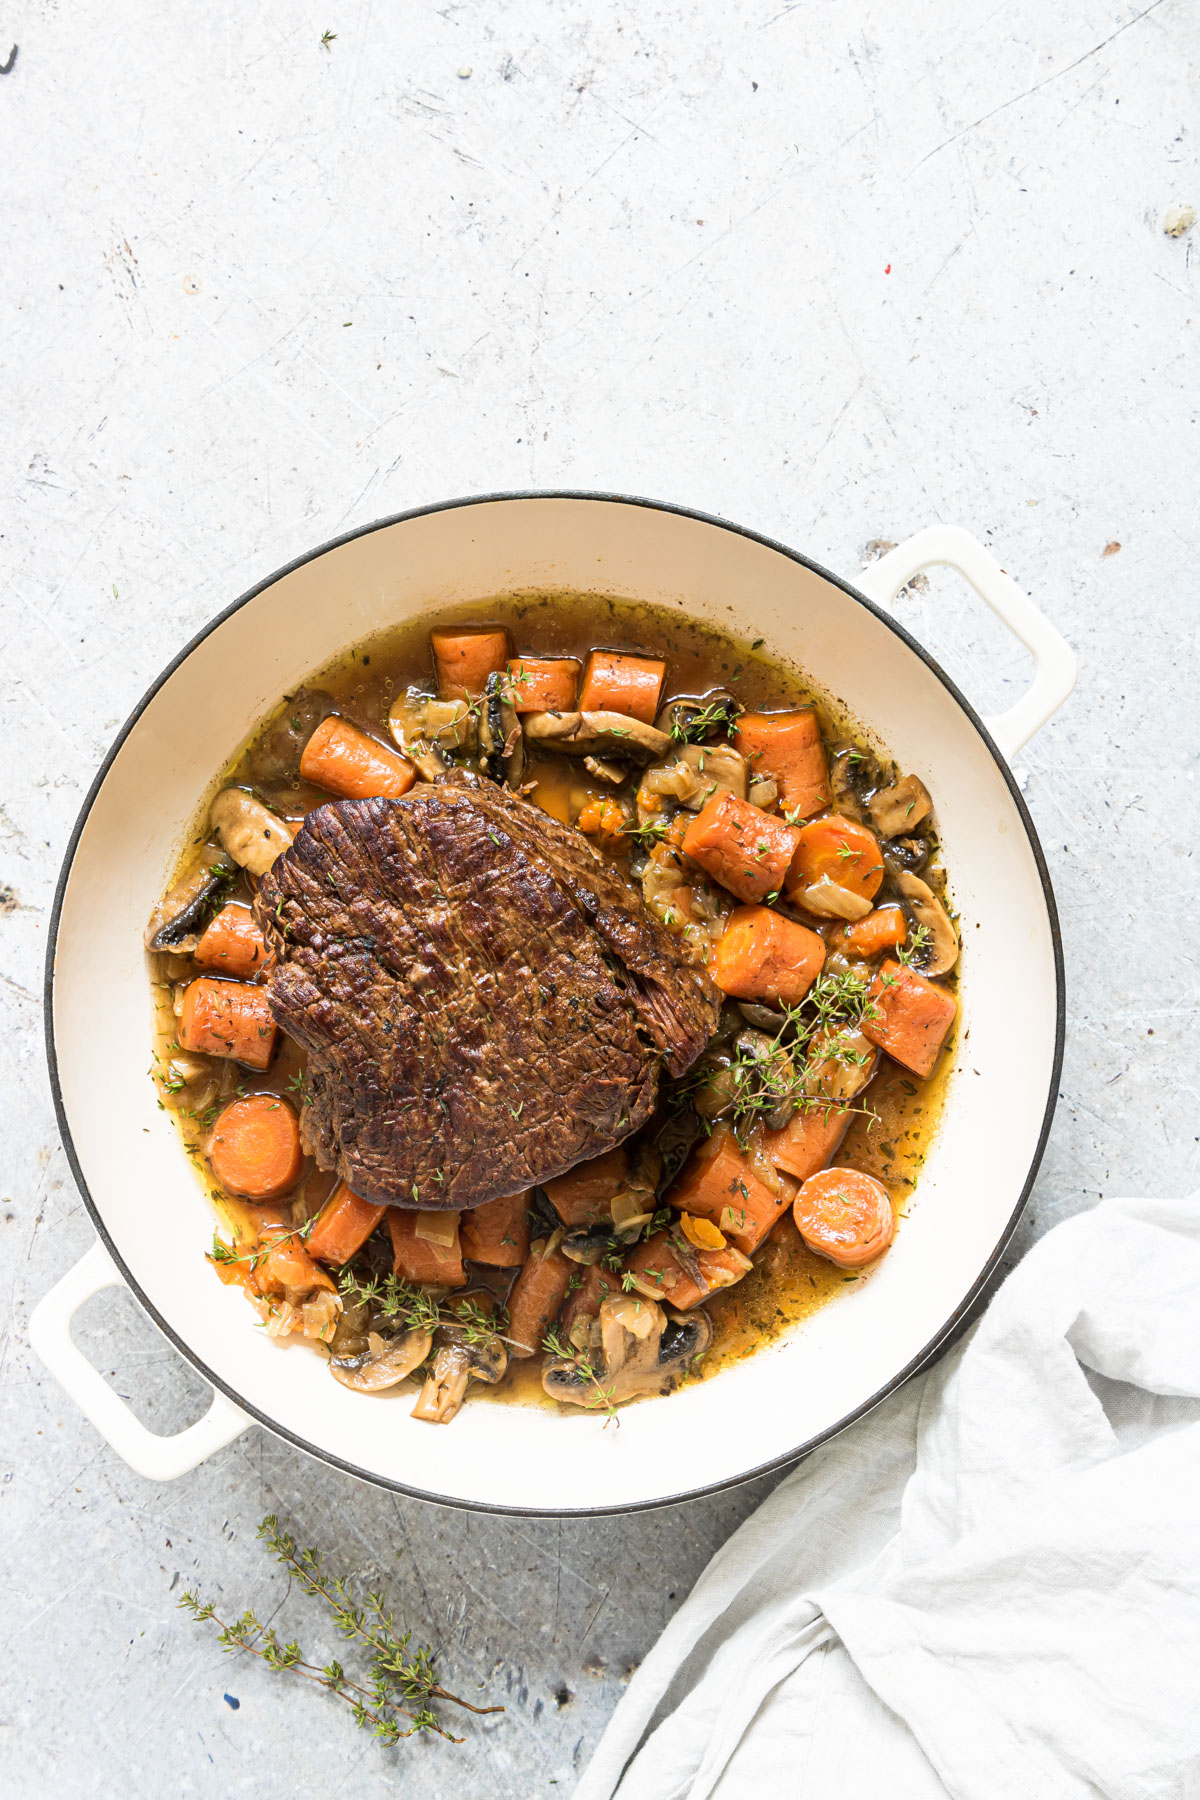 A Bowl of Instant Pot Pot Roast On a table with vegetables and garnish